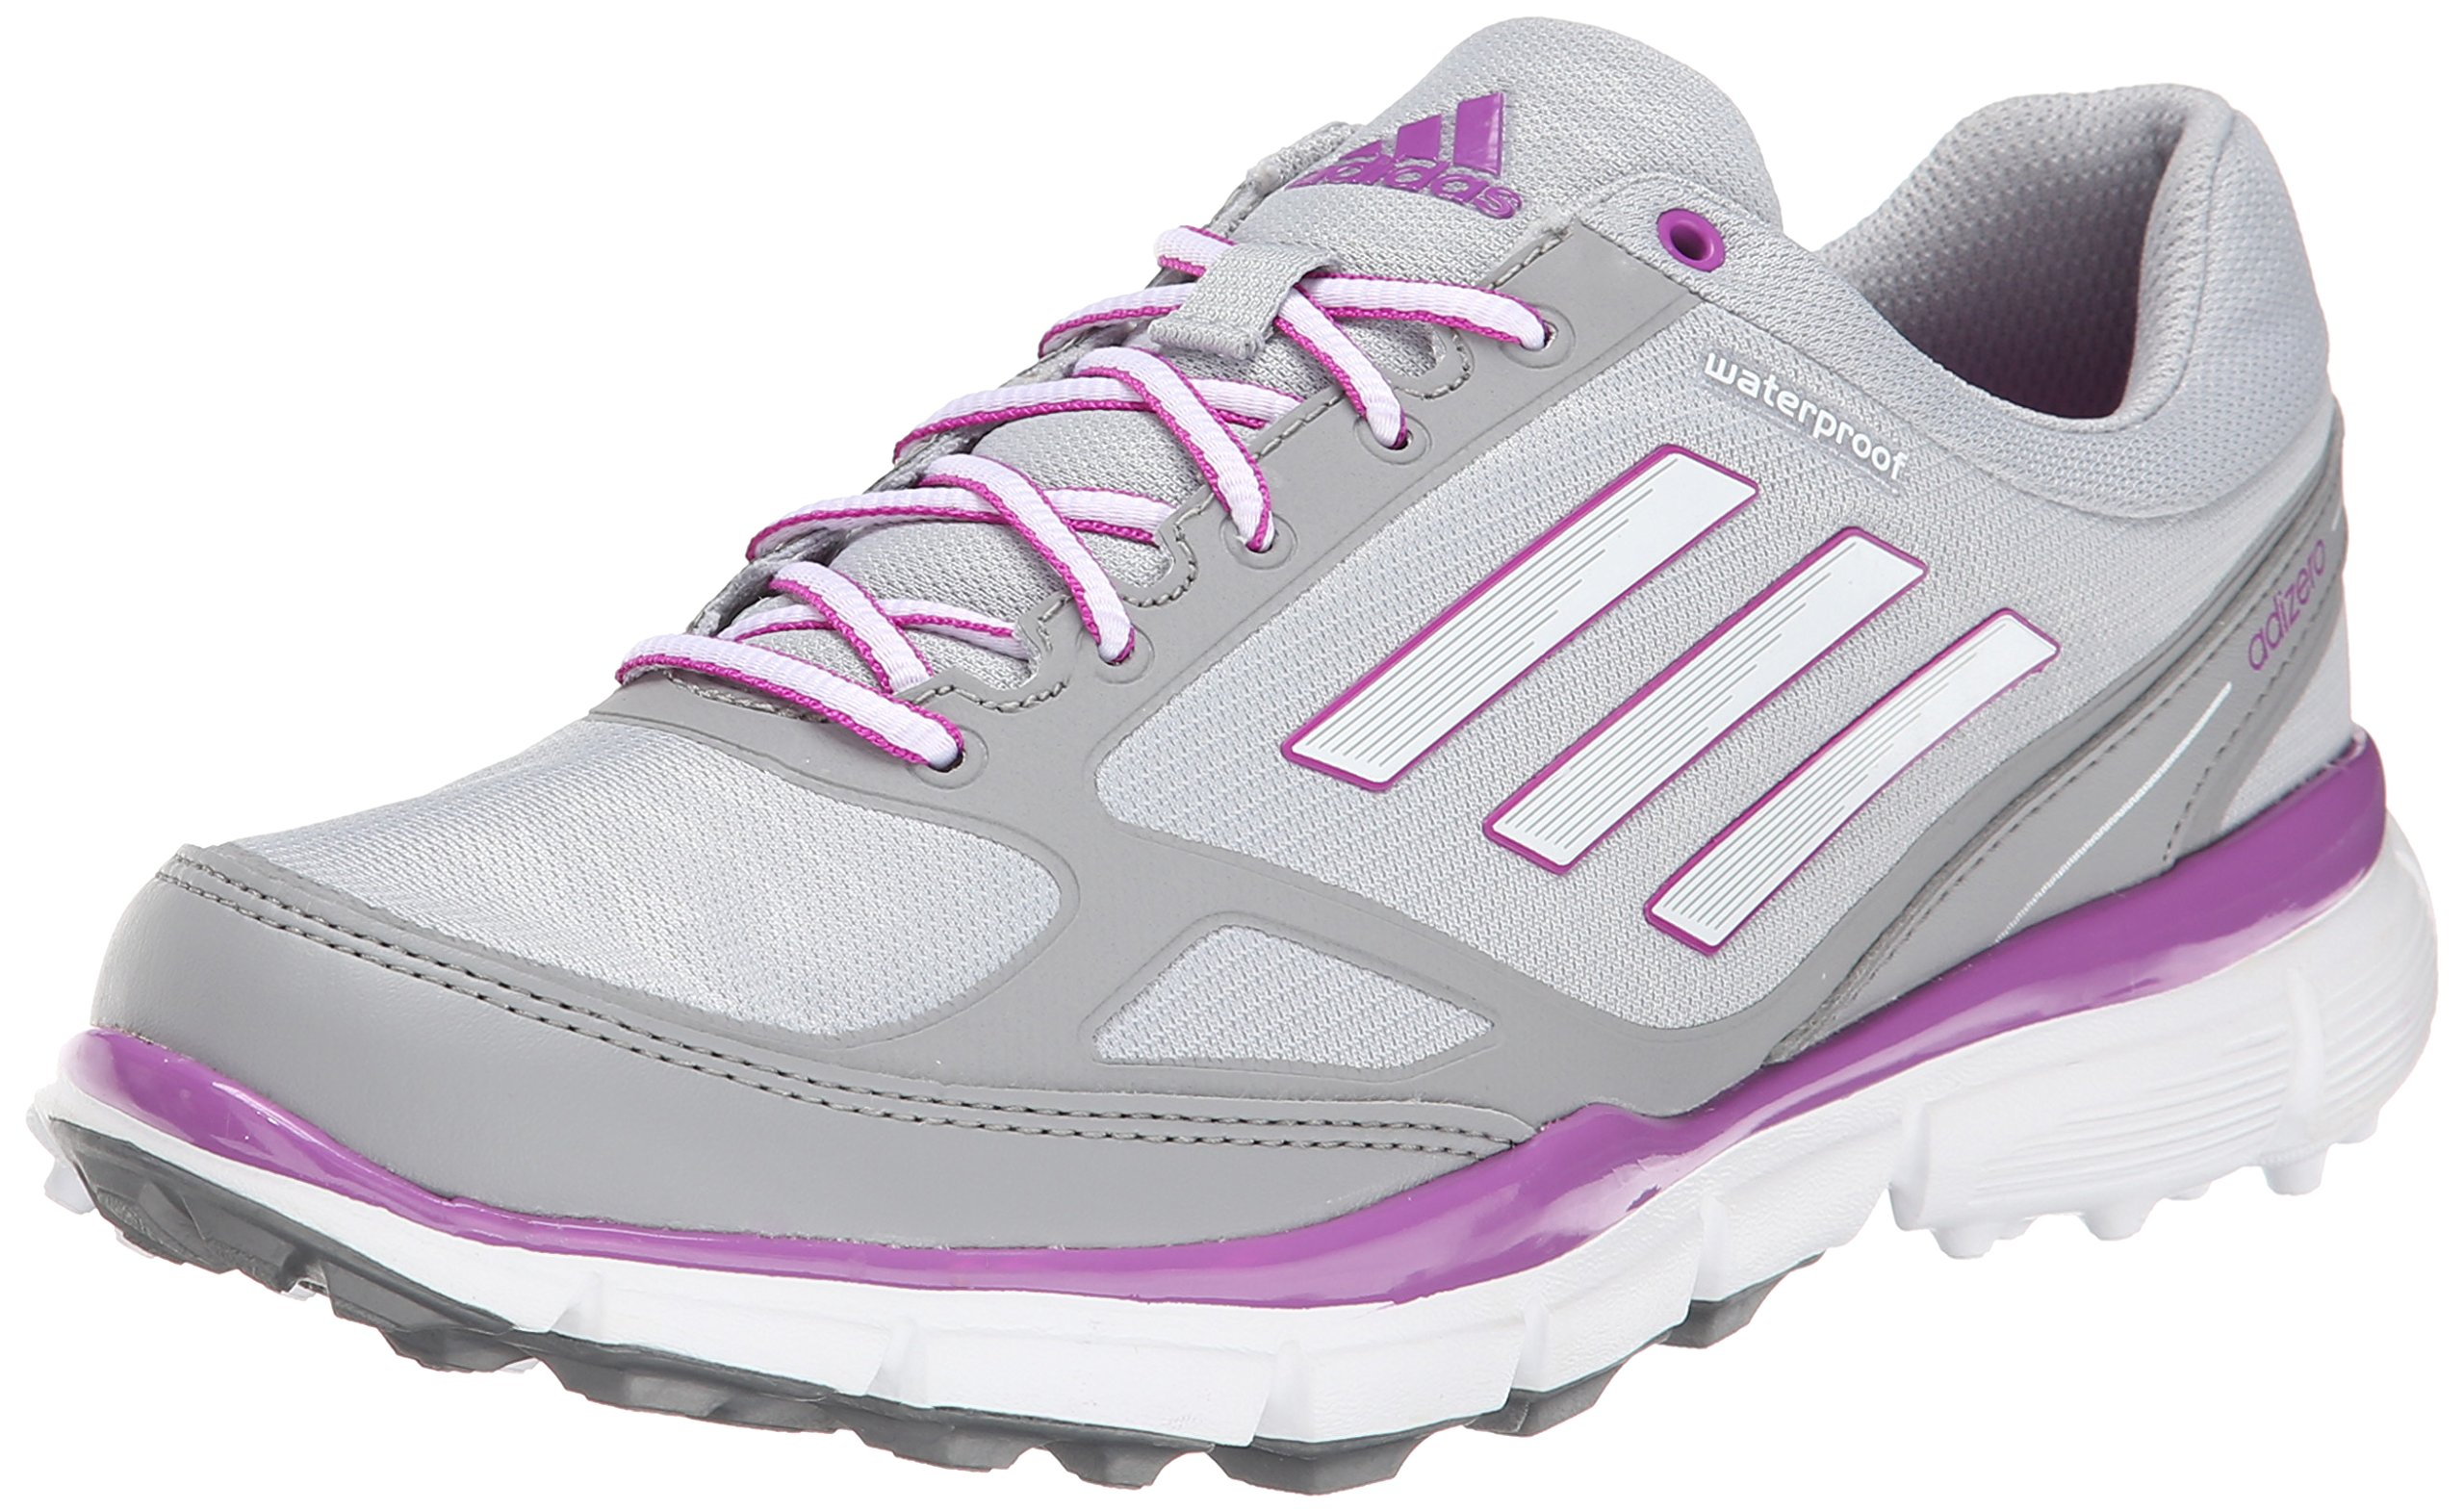 adidas Women's W Adizero Sport III Golf Shoe, Clear Onix/Running White/Flash Pink, 9.5 M US